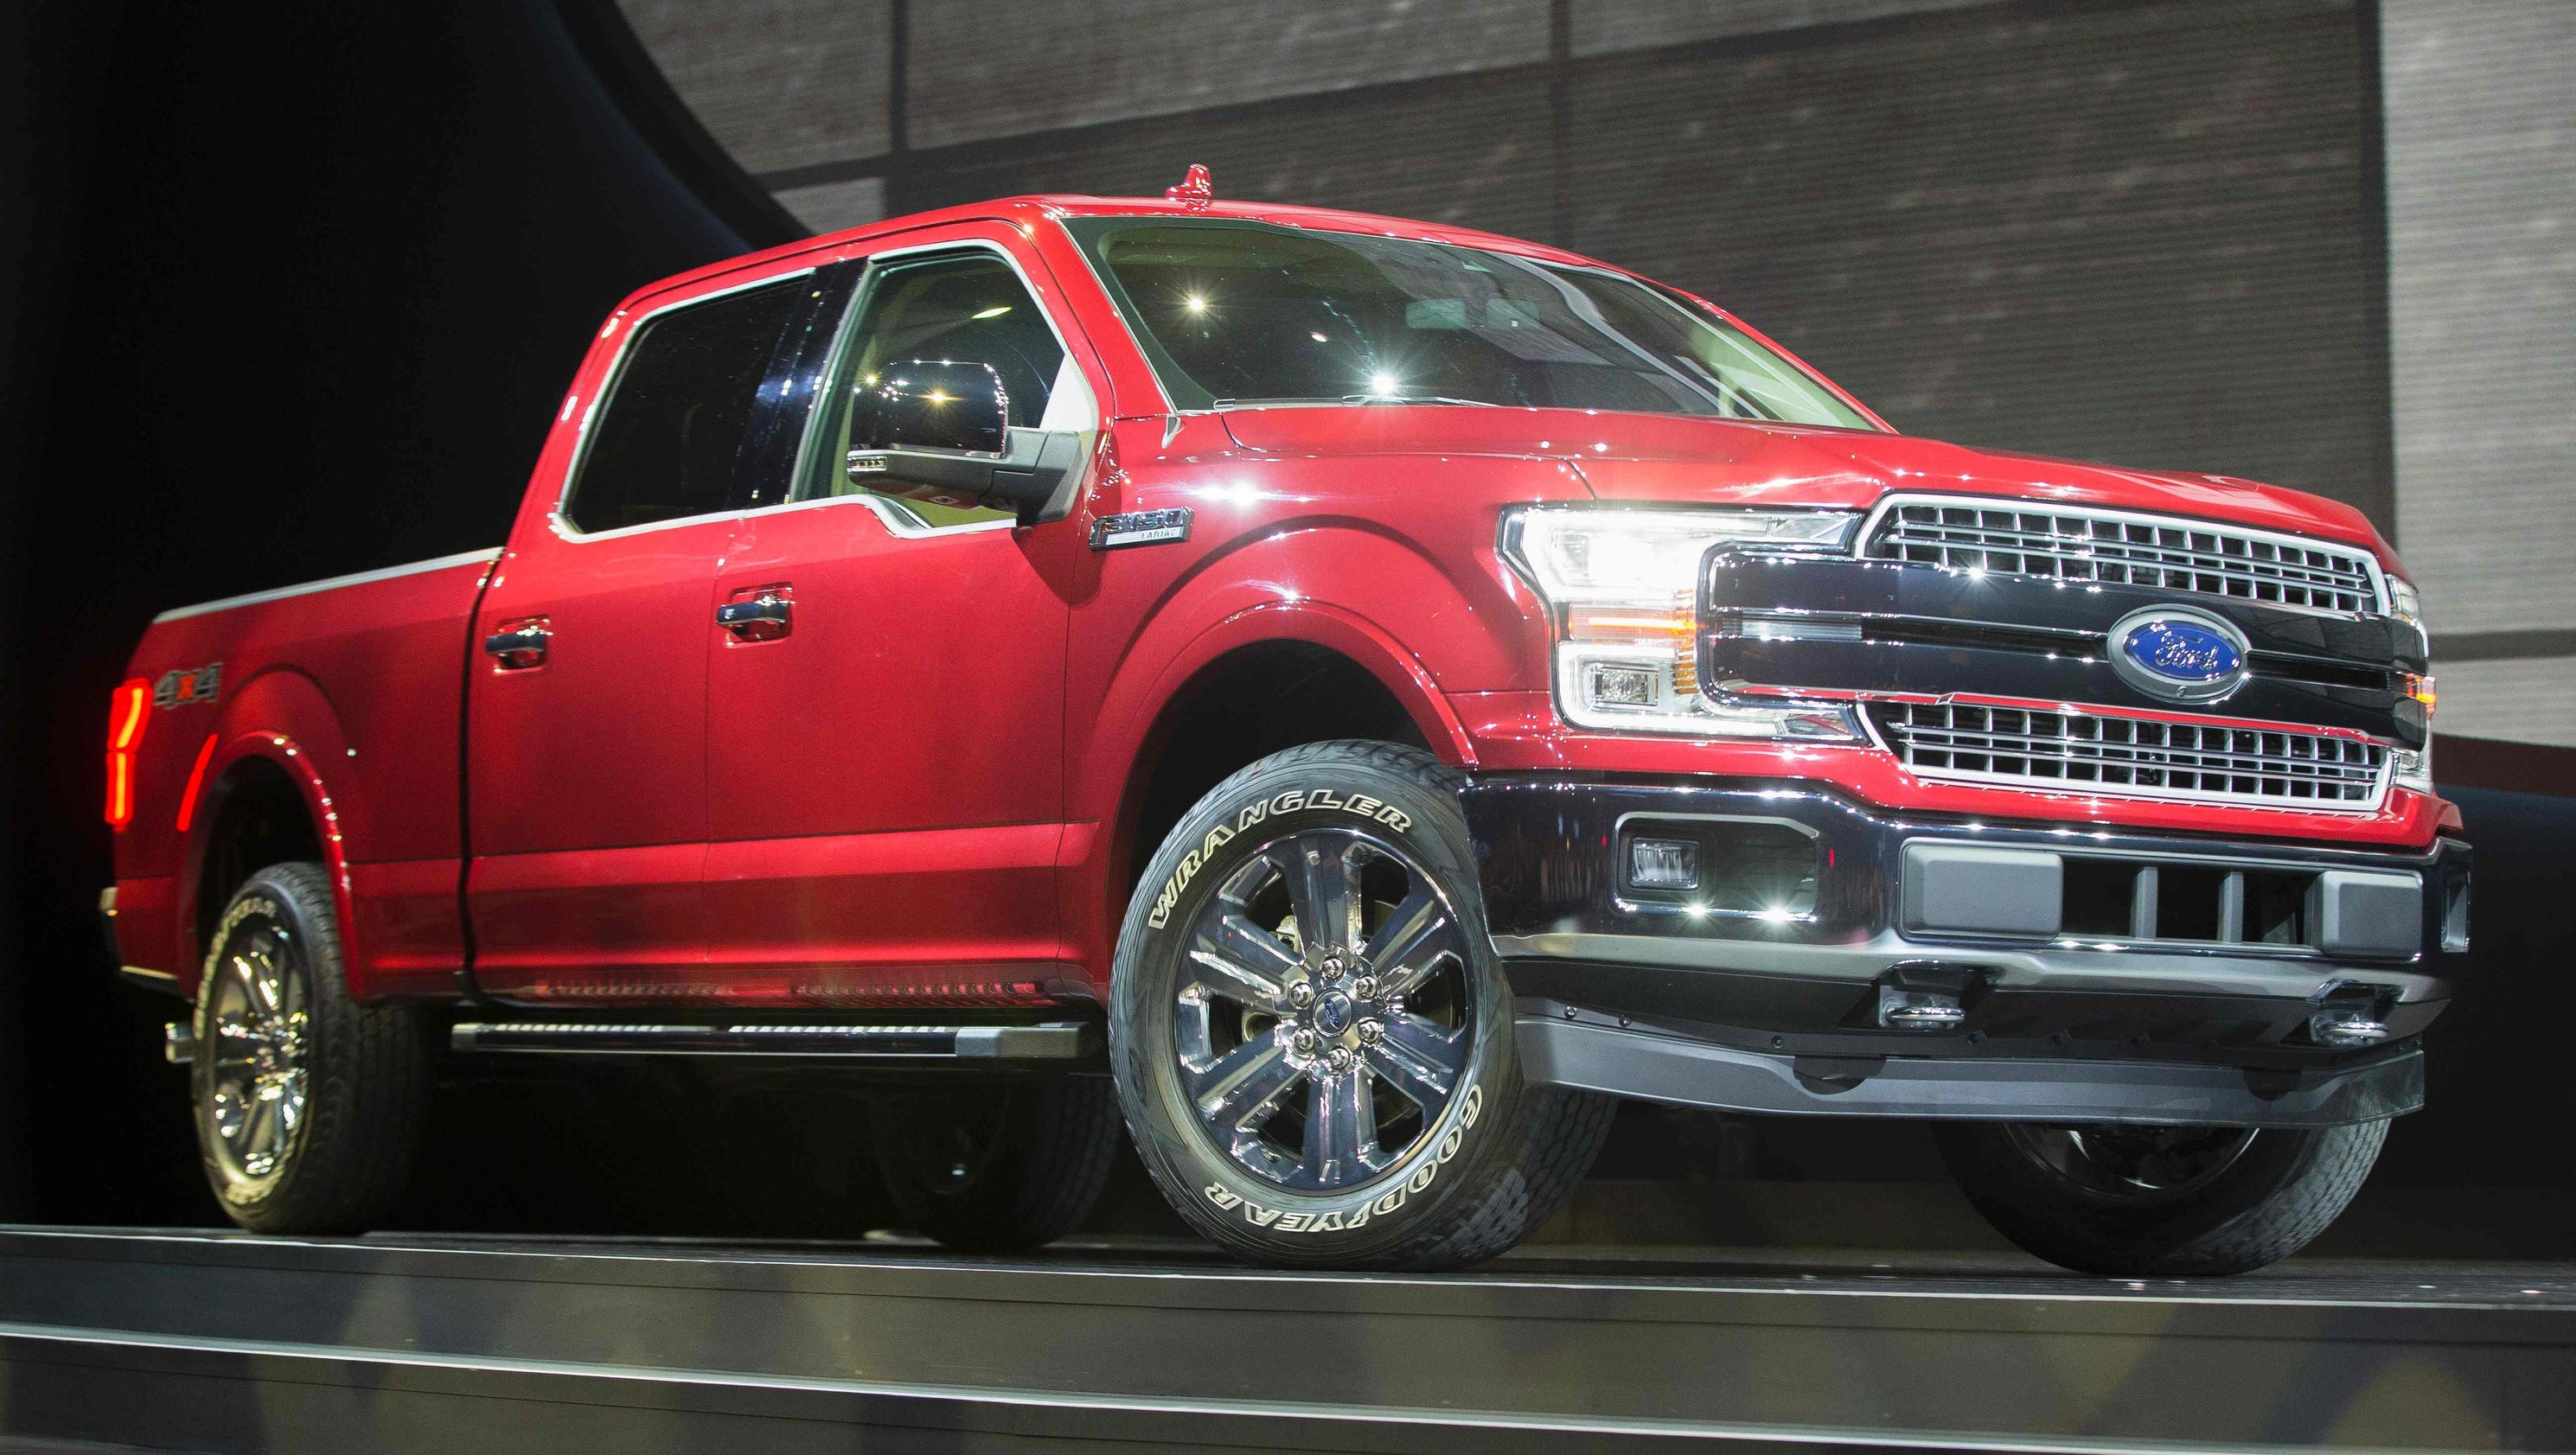 Ford's U.S. sales rose 2.2% in May, while GM was down 1.3% ...